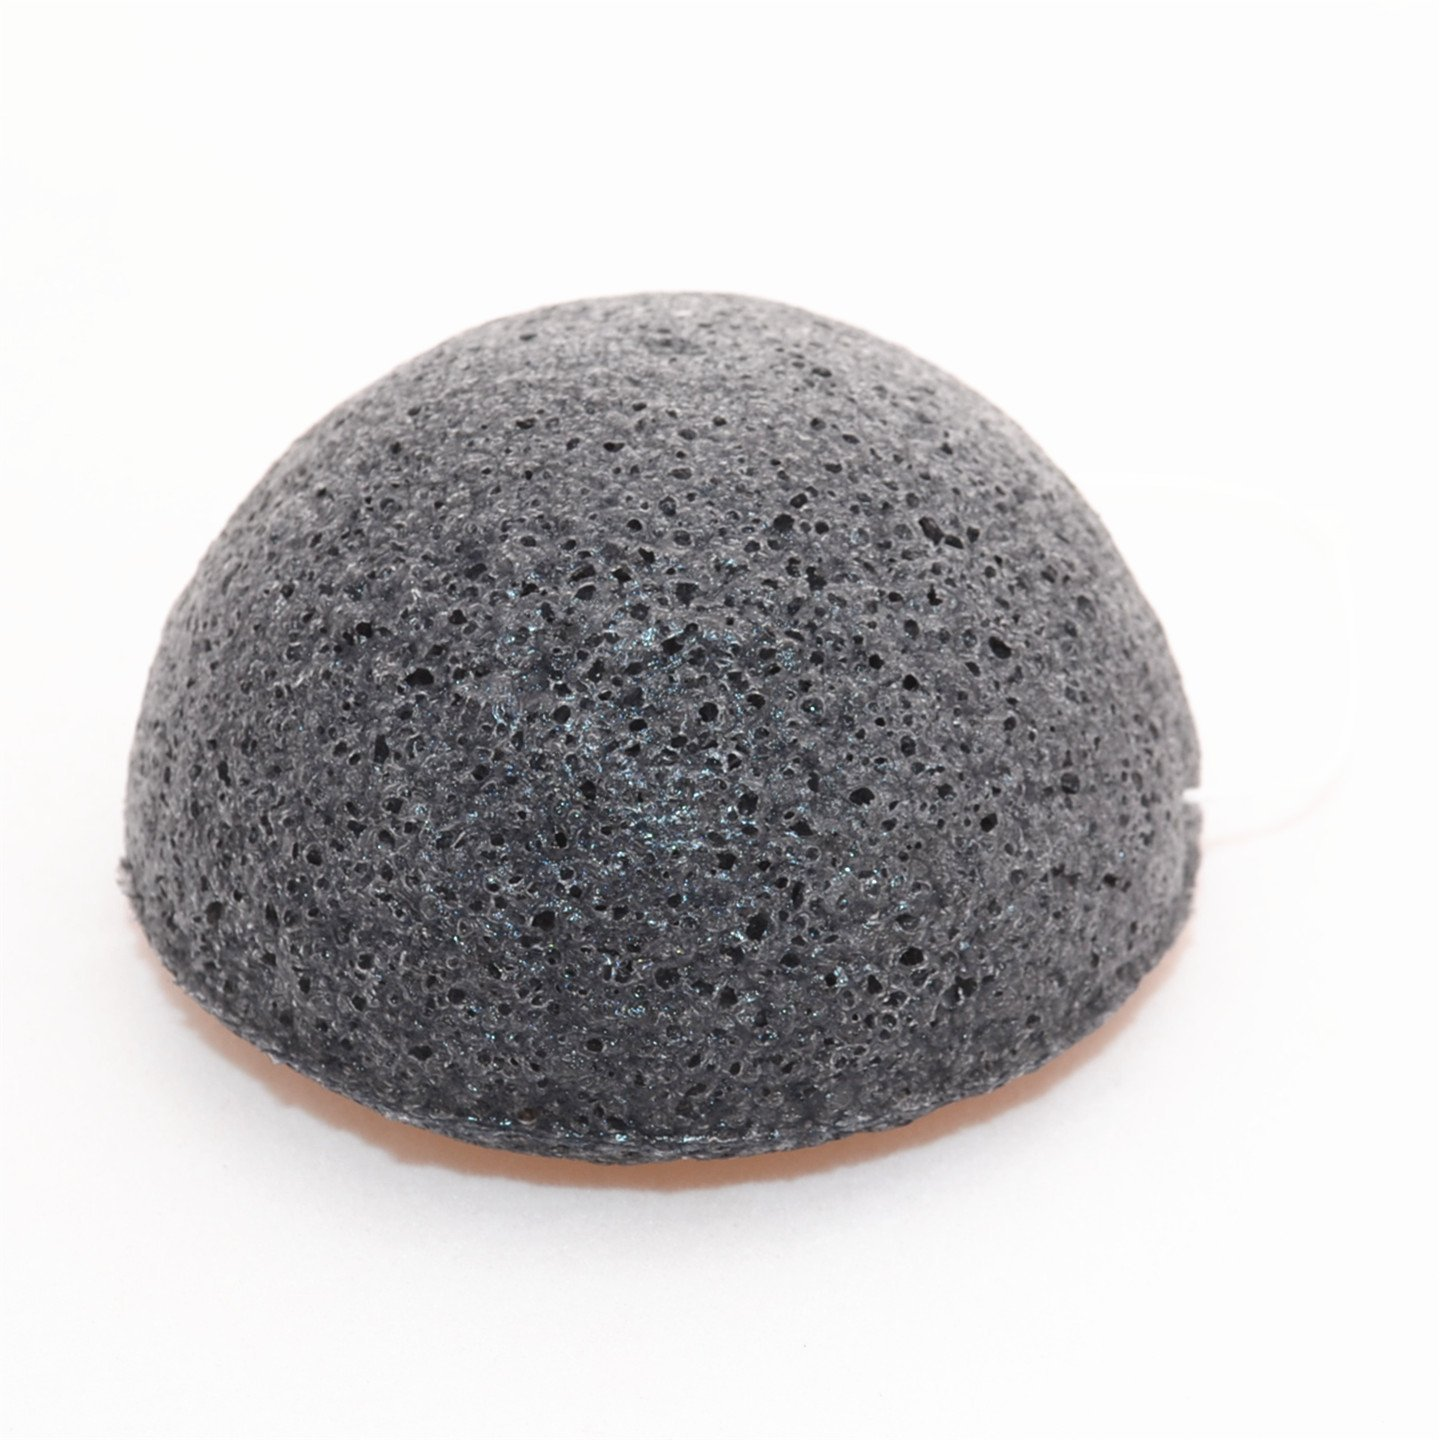 Konjac Facial Sponge Set - 100% Natural Great for Sensitive, Oily & Acne Prone Skin -Best Beauty Facial Scrub for gentle deep cleaning & exfoliation (2 Charcoal Sponges Included!)